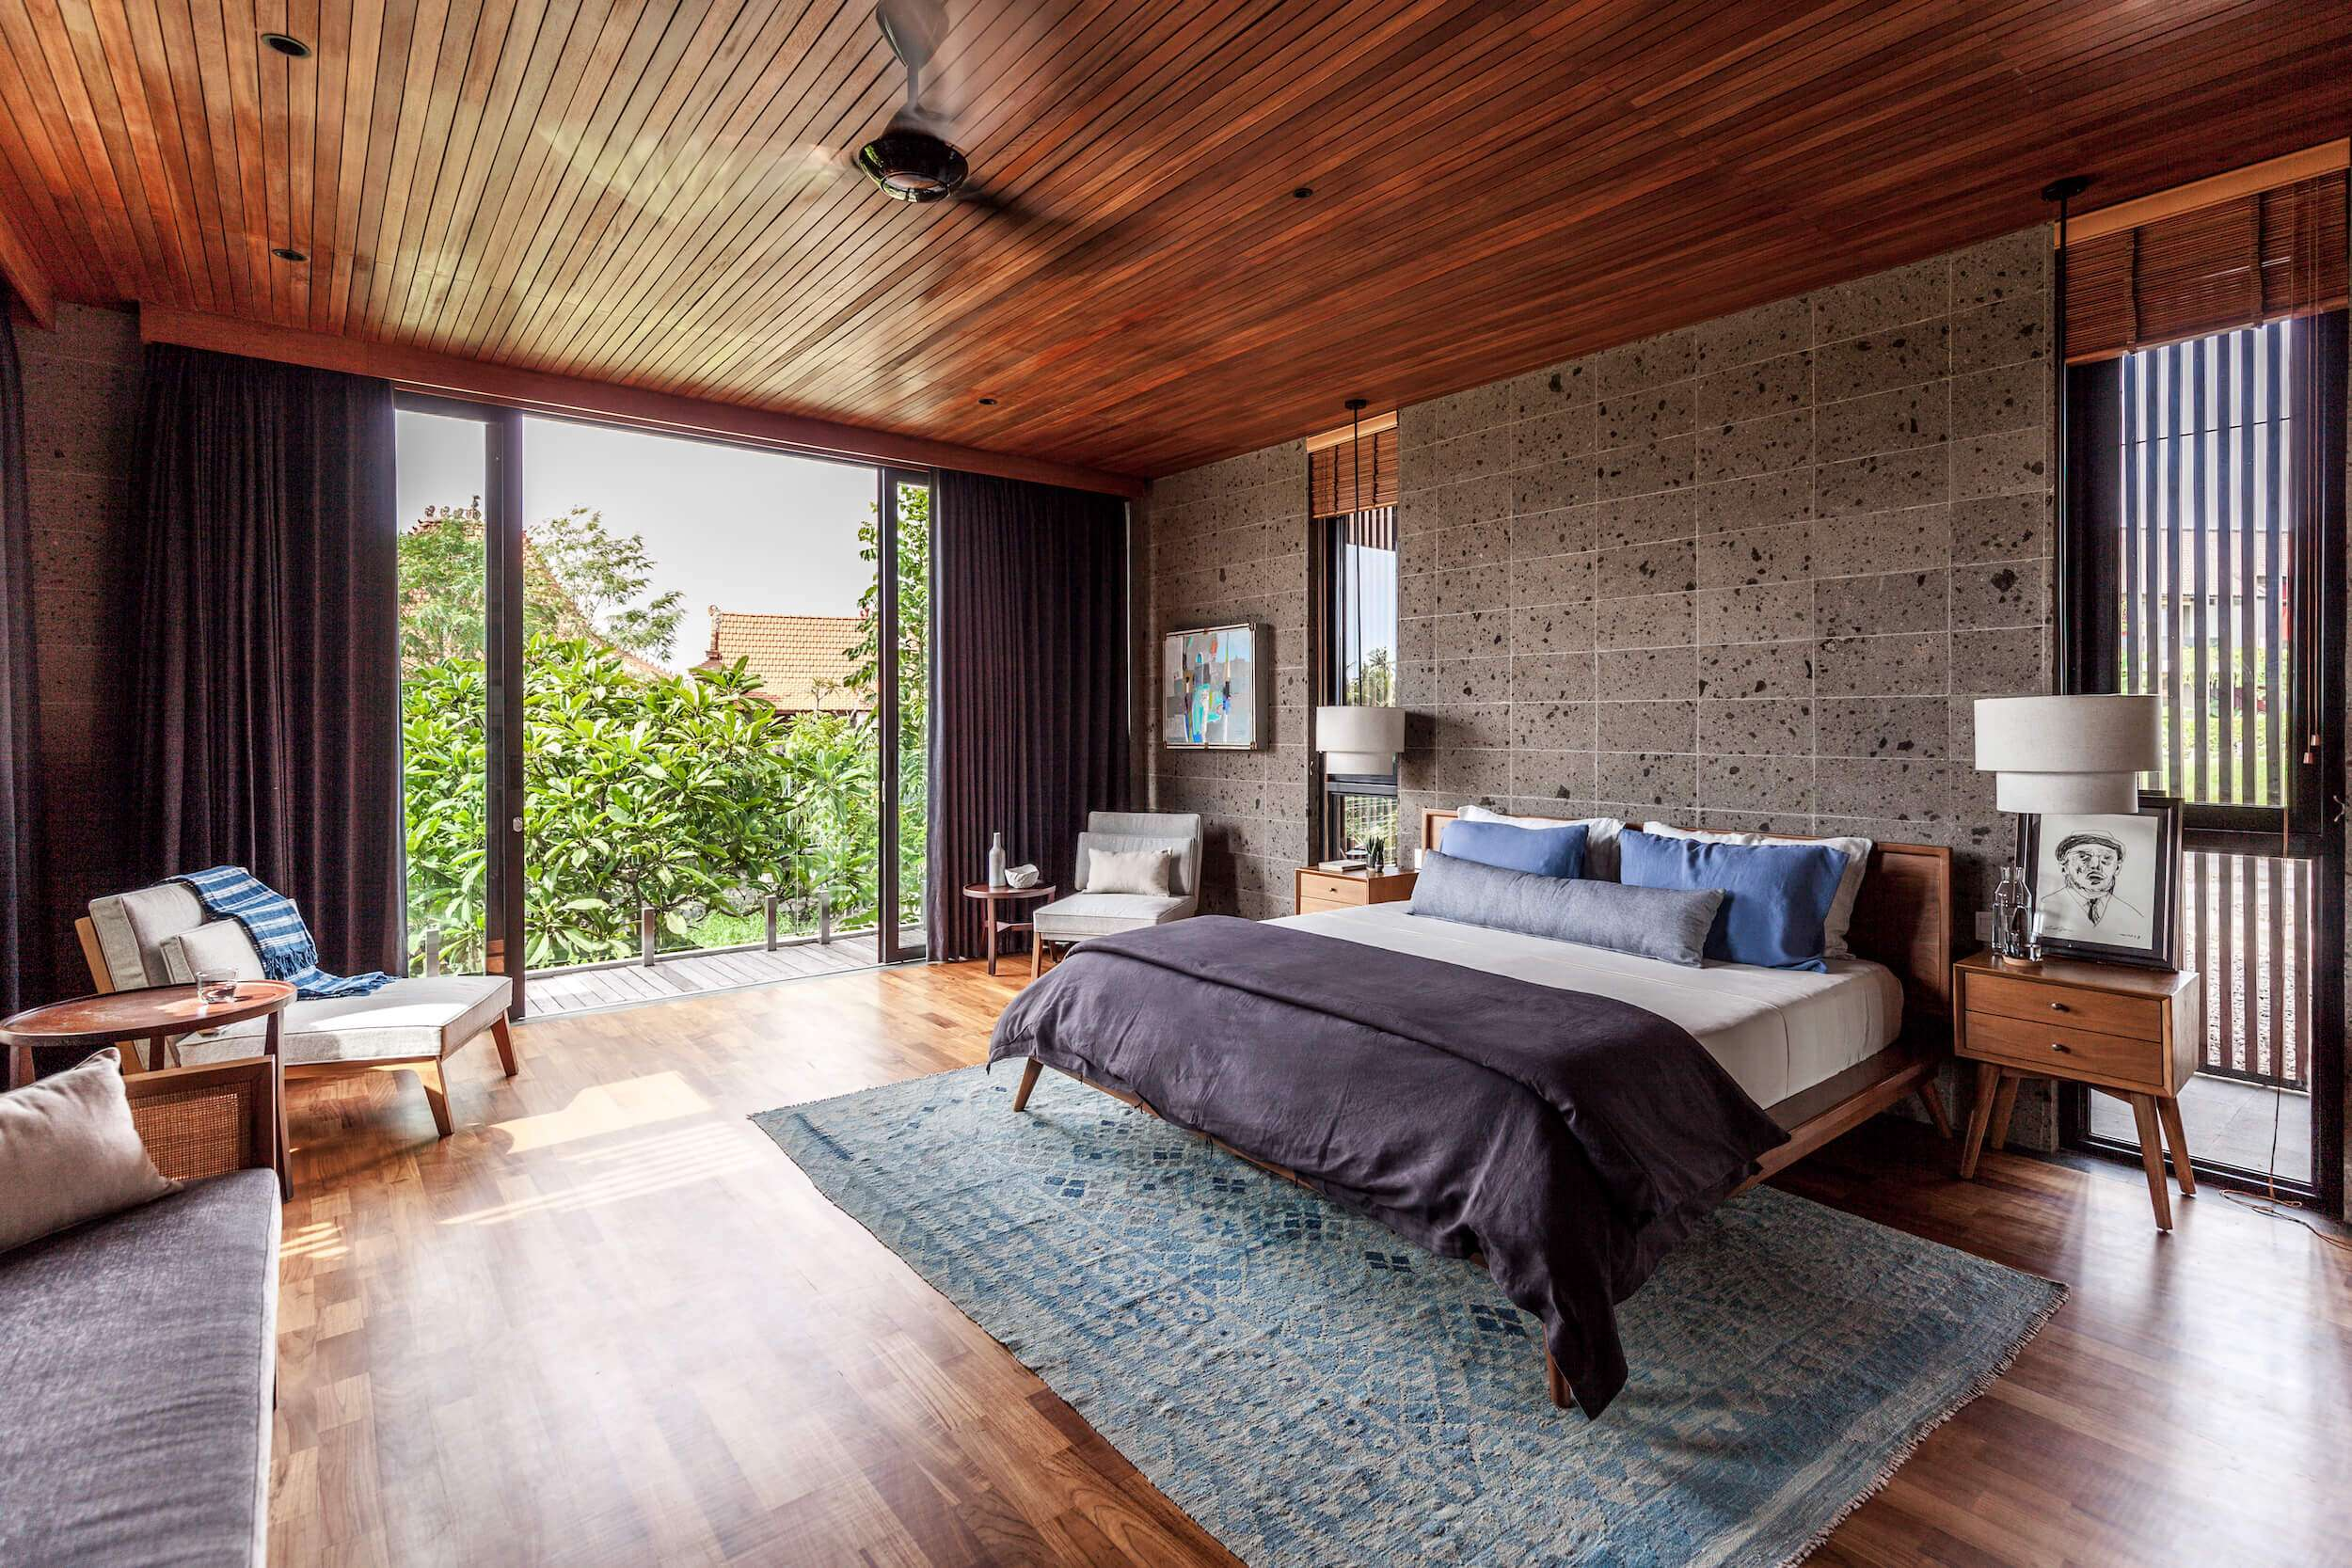 large bedroom with wooden ceiling at Riverhouse Bali, one of the best villas in the world